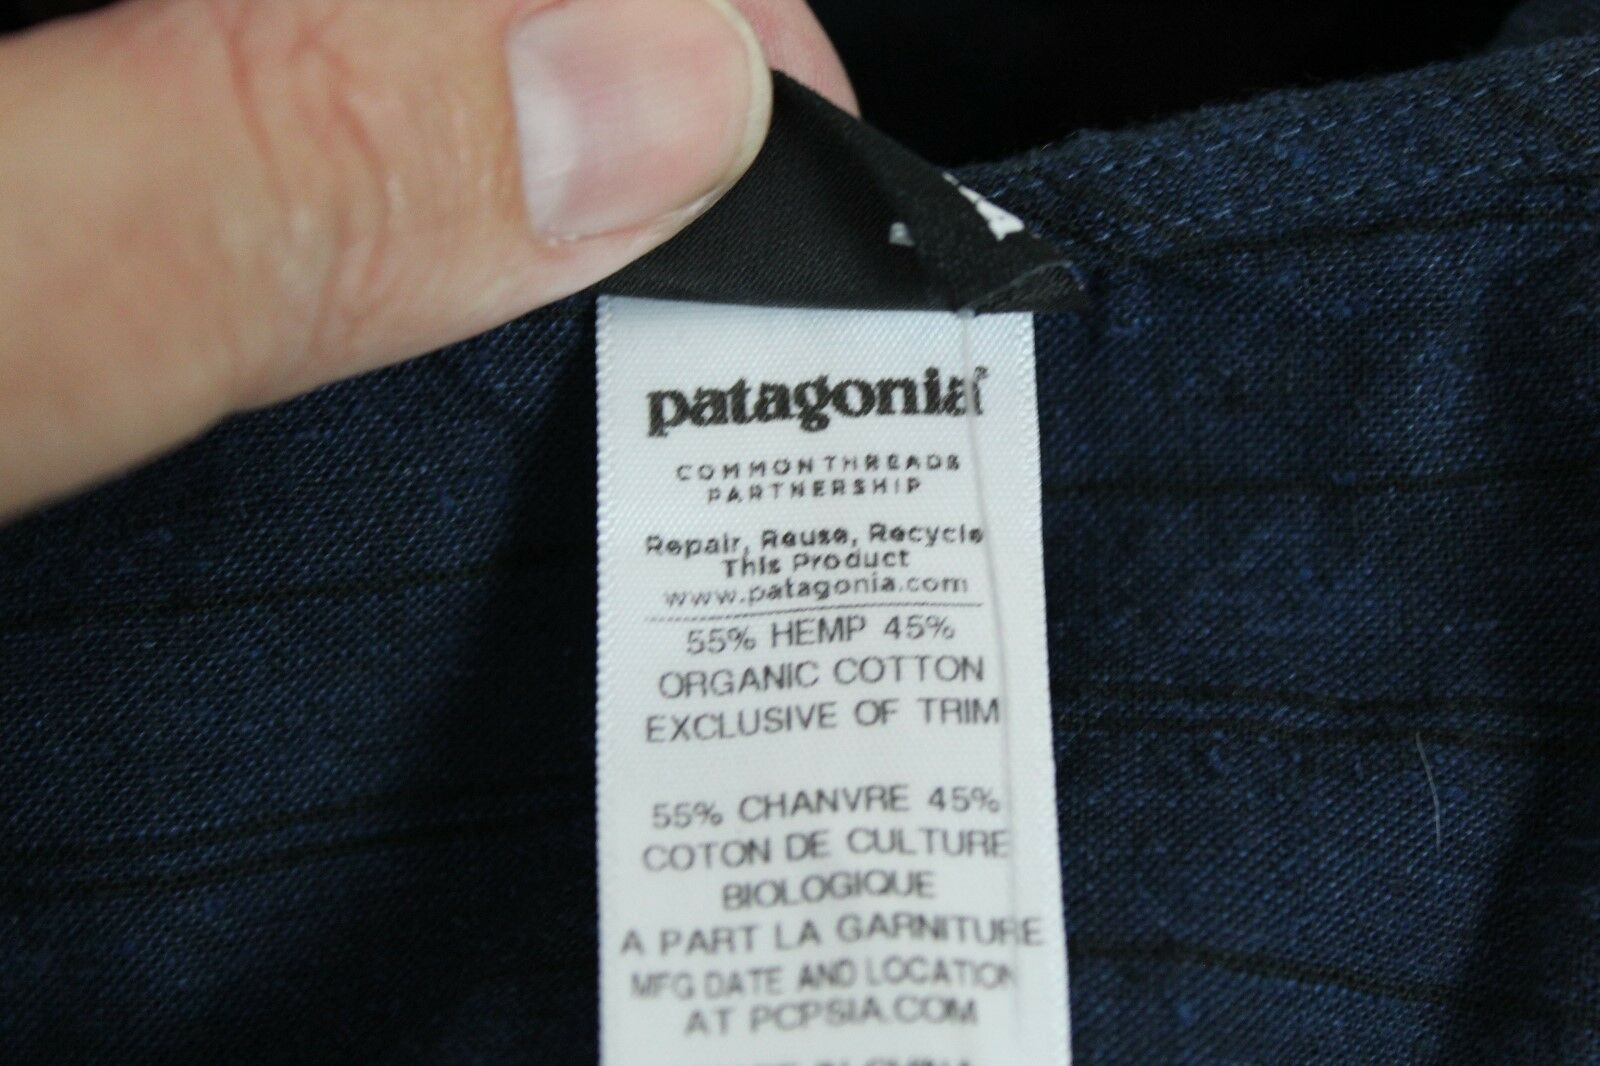 Patagonia Island Hemp Credver Credver Credver Dress bluee Slim Fit Size 2 MSRP  89.00 (R) fa06a0